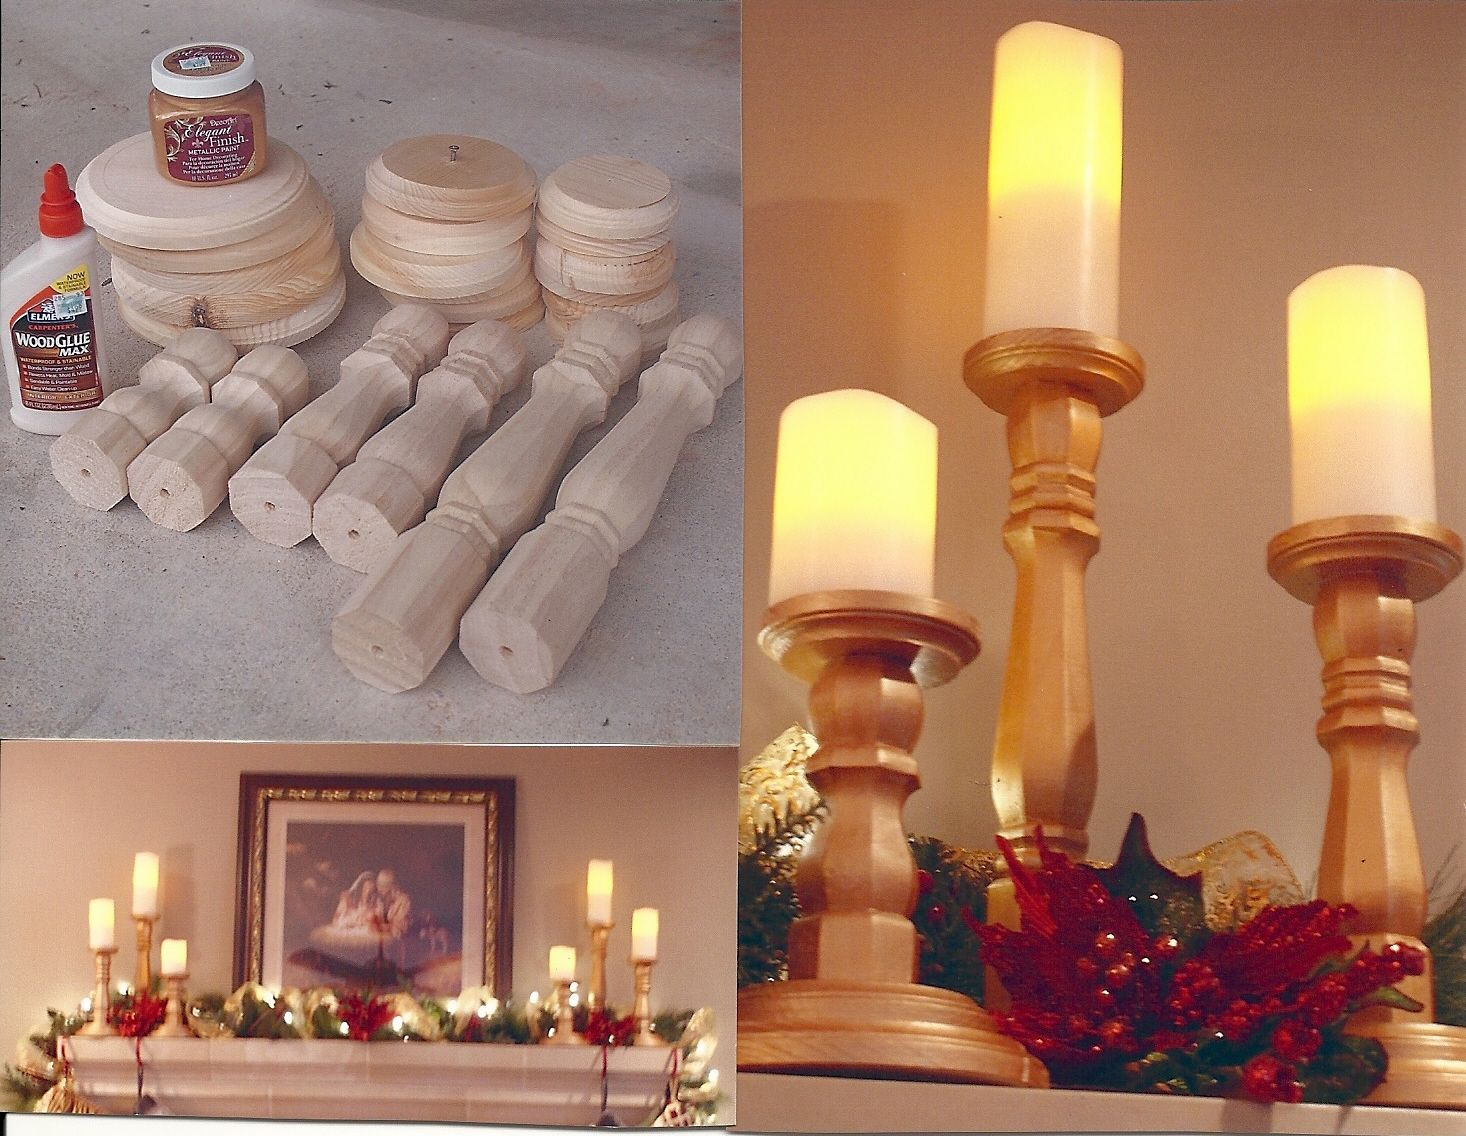 DIY Candlesticks! Table legs from Home Depot, Paint and